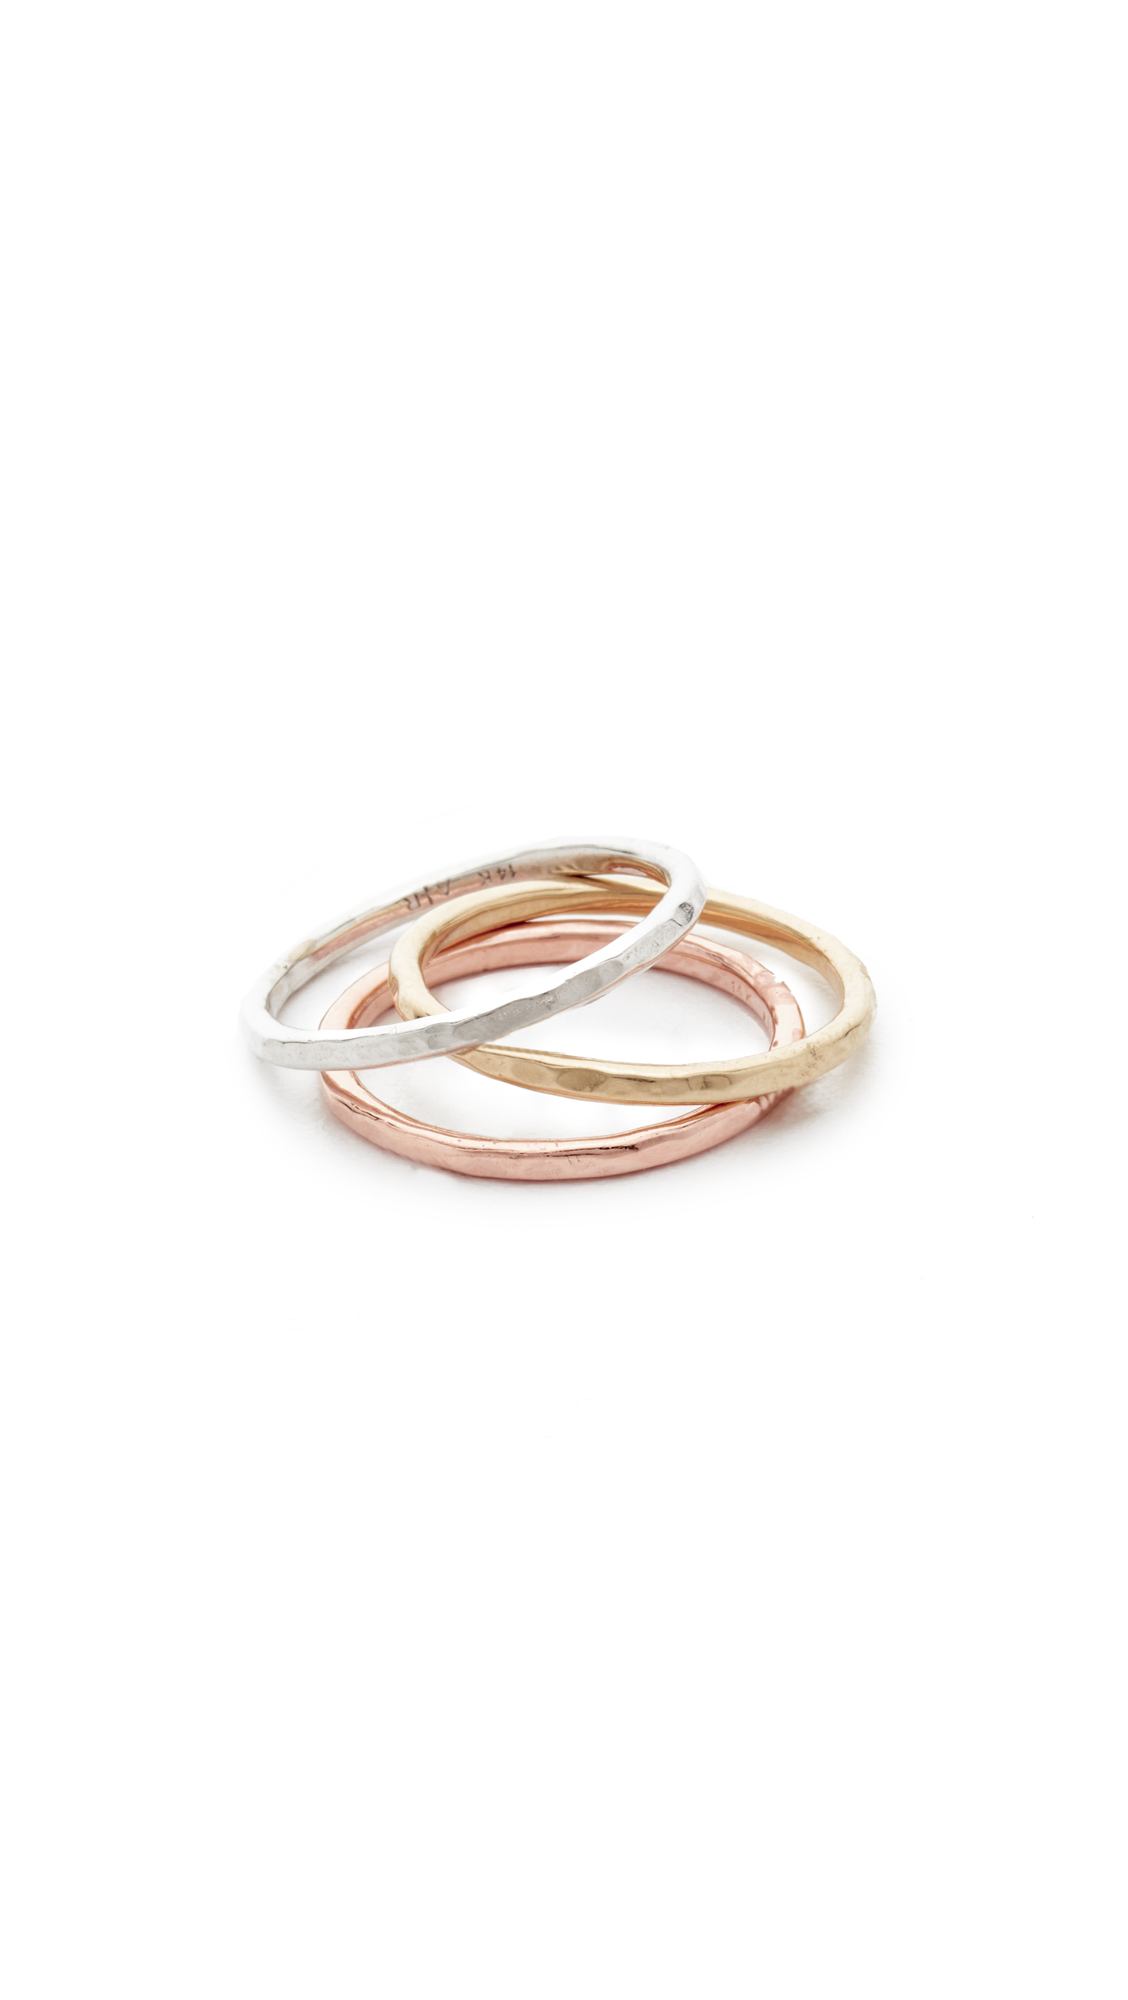 Adina Reyter Circle Stack Rings - Rose Gold/Gold/White Gold